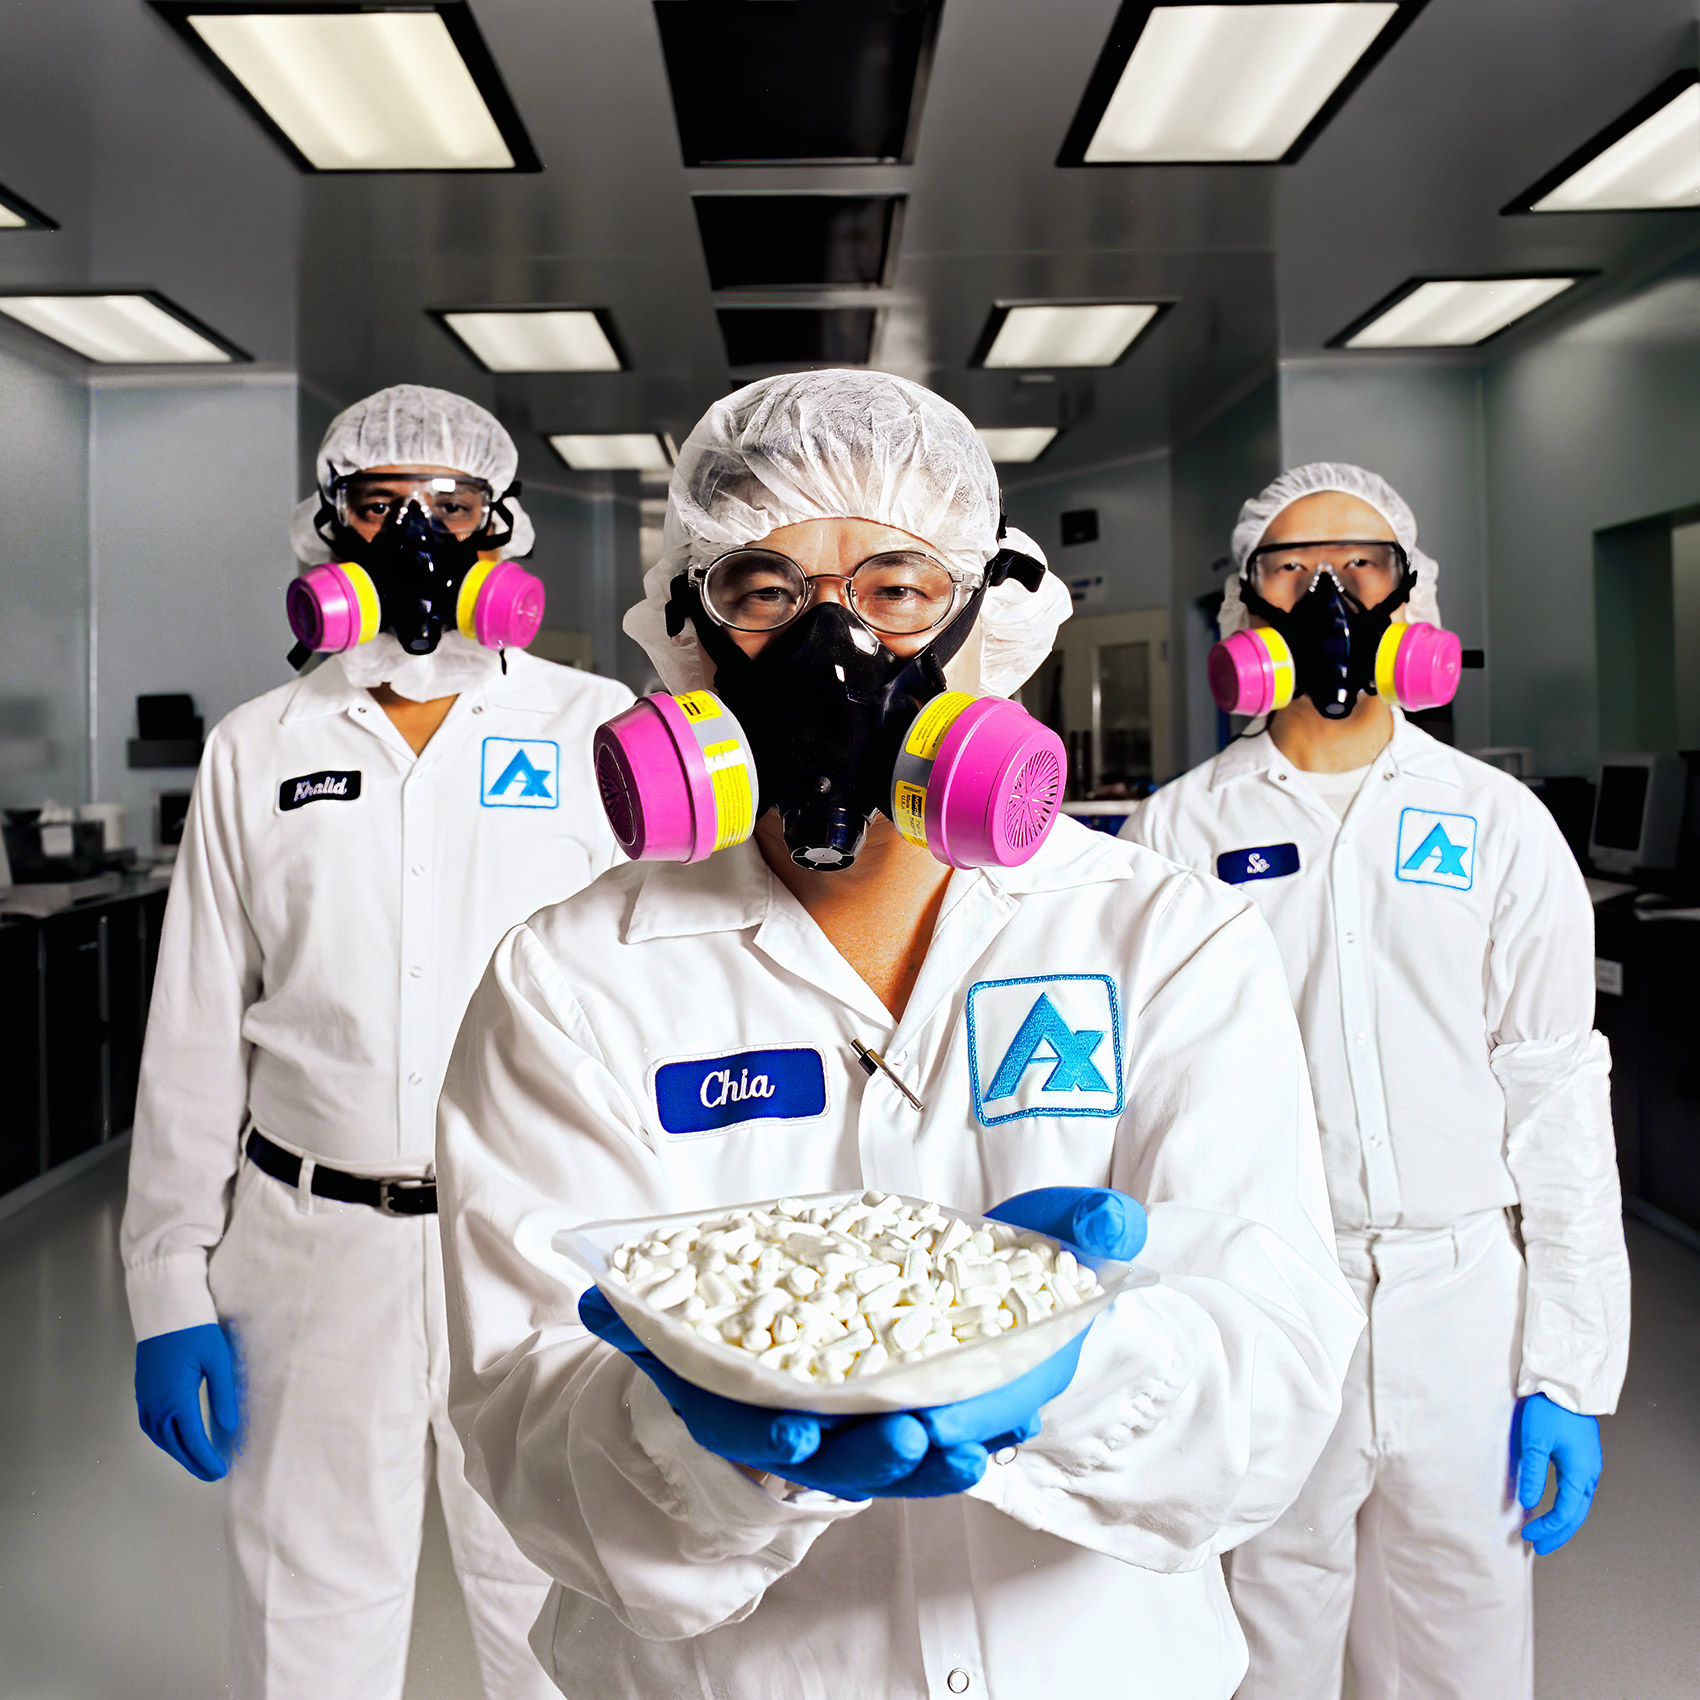 three-employees-from-apotex-pose-for-a-photo-holding-generic-drugs-at-the-companies-plant-in-toronto-canada